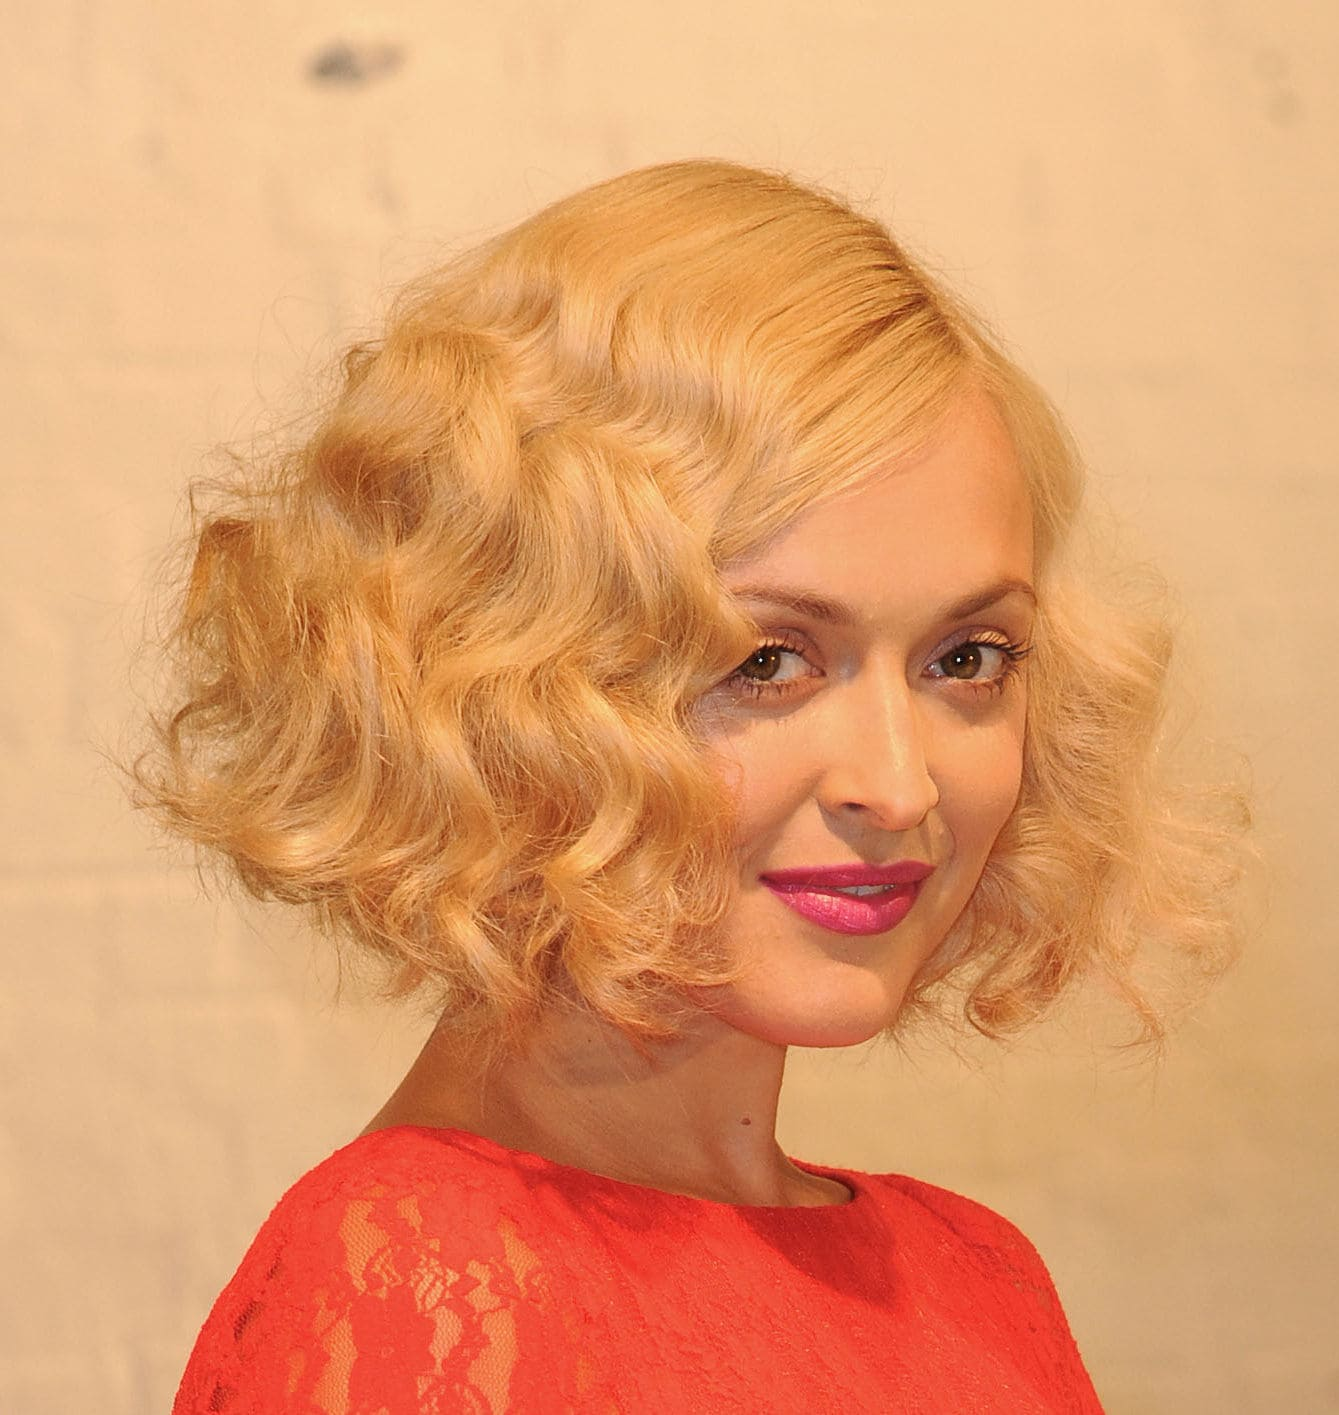 Angled bob: Fearne Cotton with a blonde 1920s inspired wavy angled bob with a side parting, wearing pink lipstick and a red lace dress